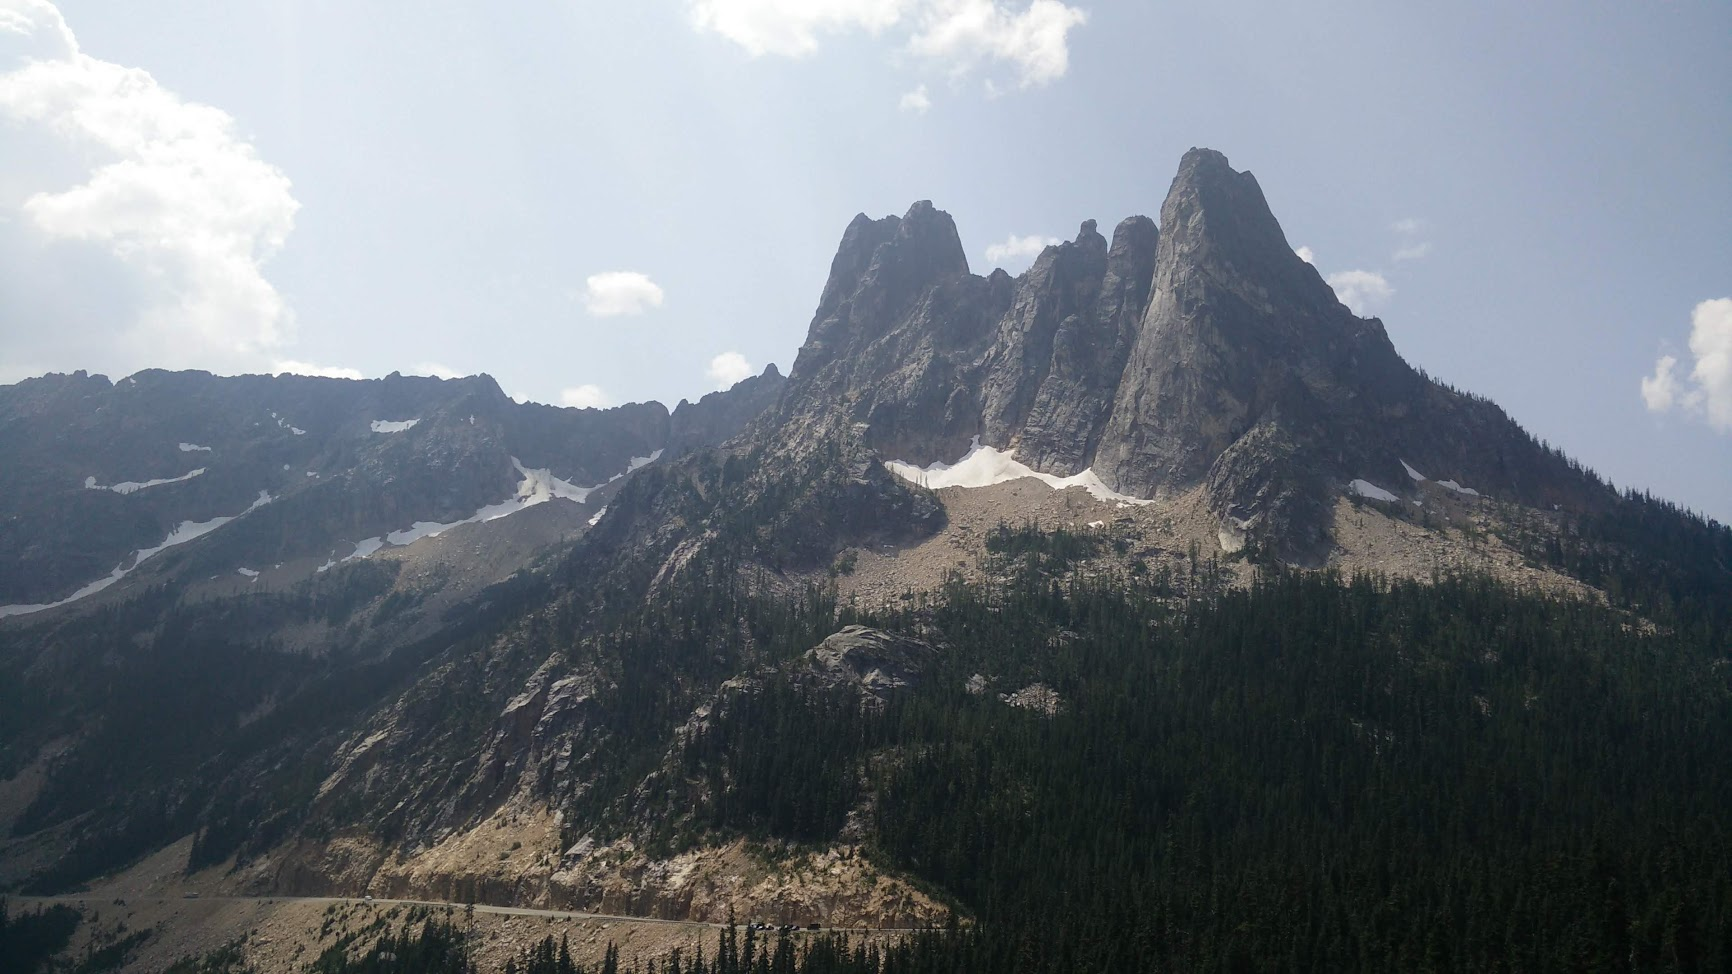 LIberty Bell Mountain